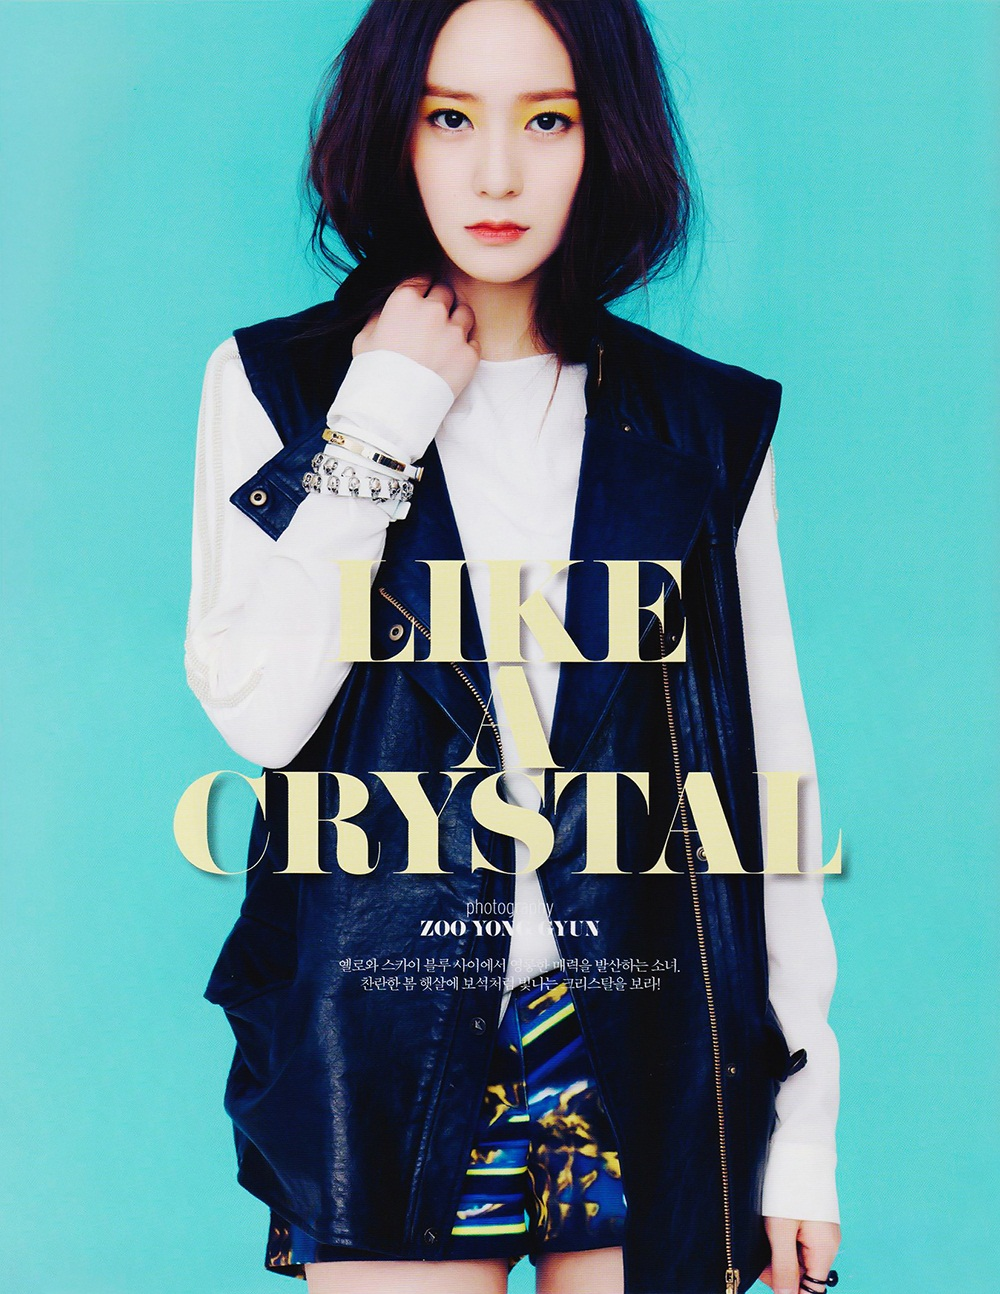 f(x) Krystal Vogue March 2013 Pictures F(x) Krystal 2013